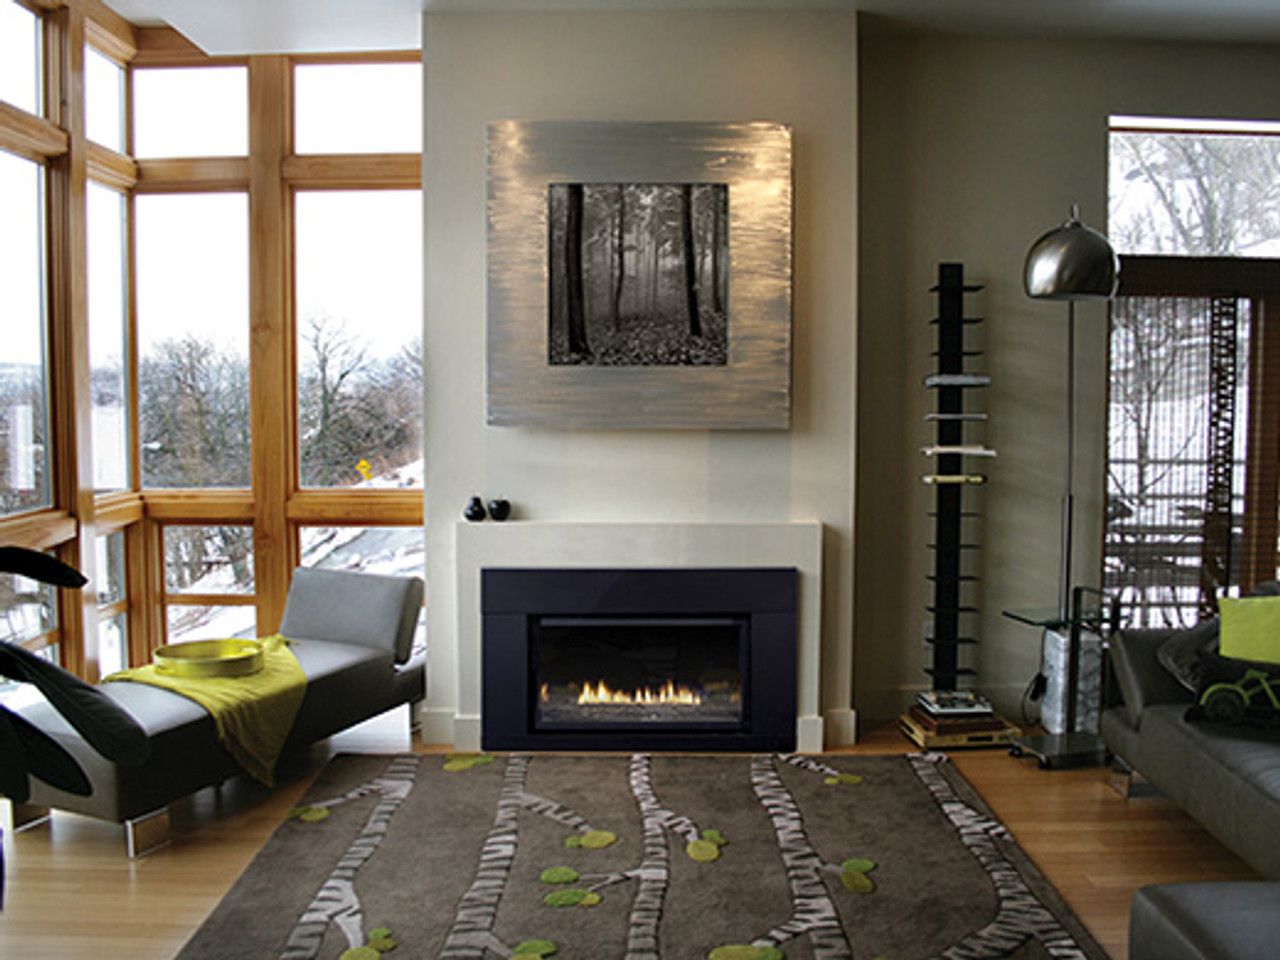 Empire Loft Series Direct-Vent Fireplace Inserts - Millivolt Control with On/Off Switch -Medium DVL33IN